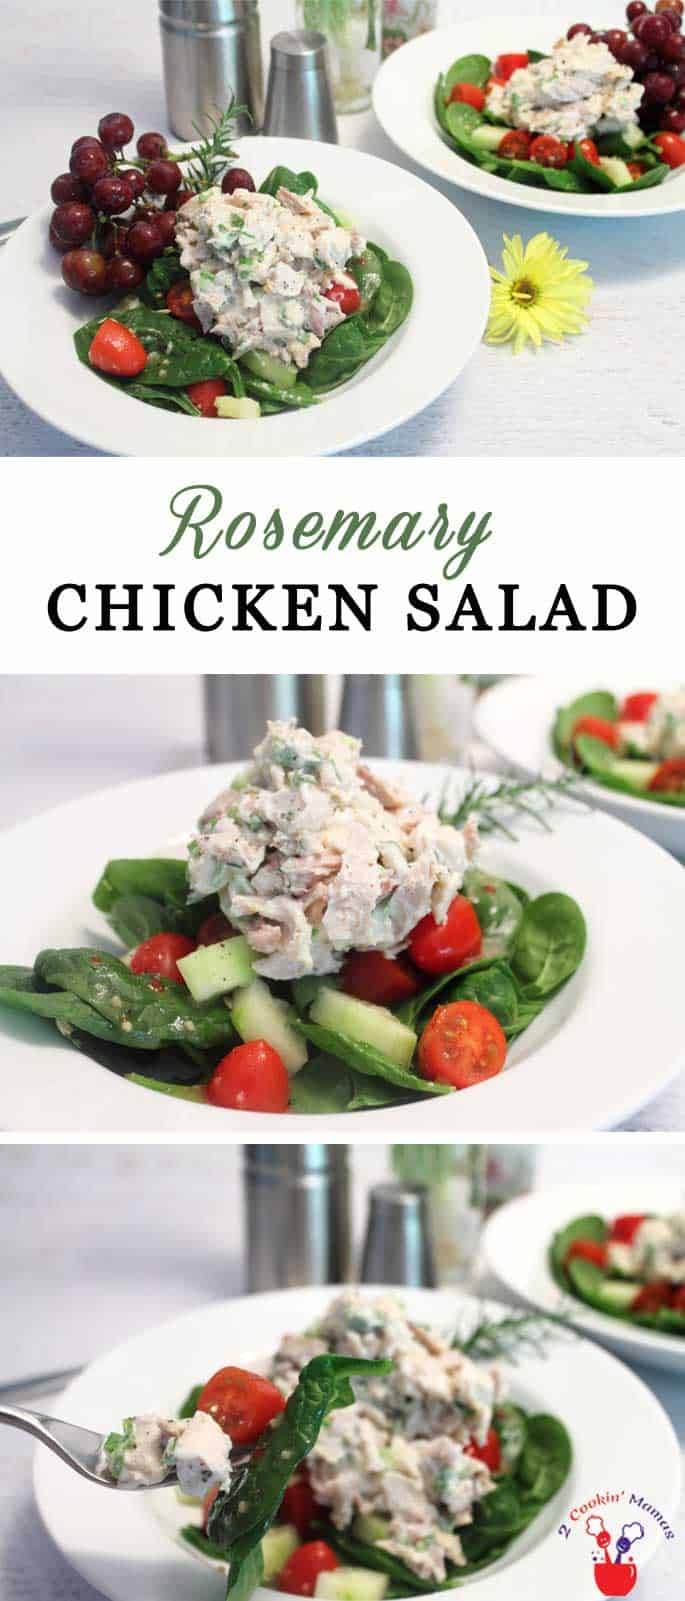 Our healthy chicken salad is easy to make &, when served over our spinach salad, it's packed with lean protein, fiber and antioxidants. #salad #healthy #healthysalad #chicken #spinach #lunch #recipe